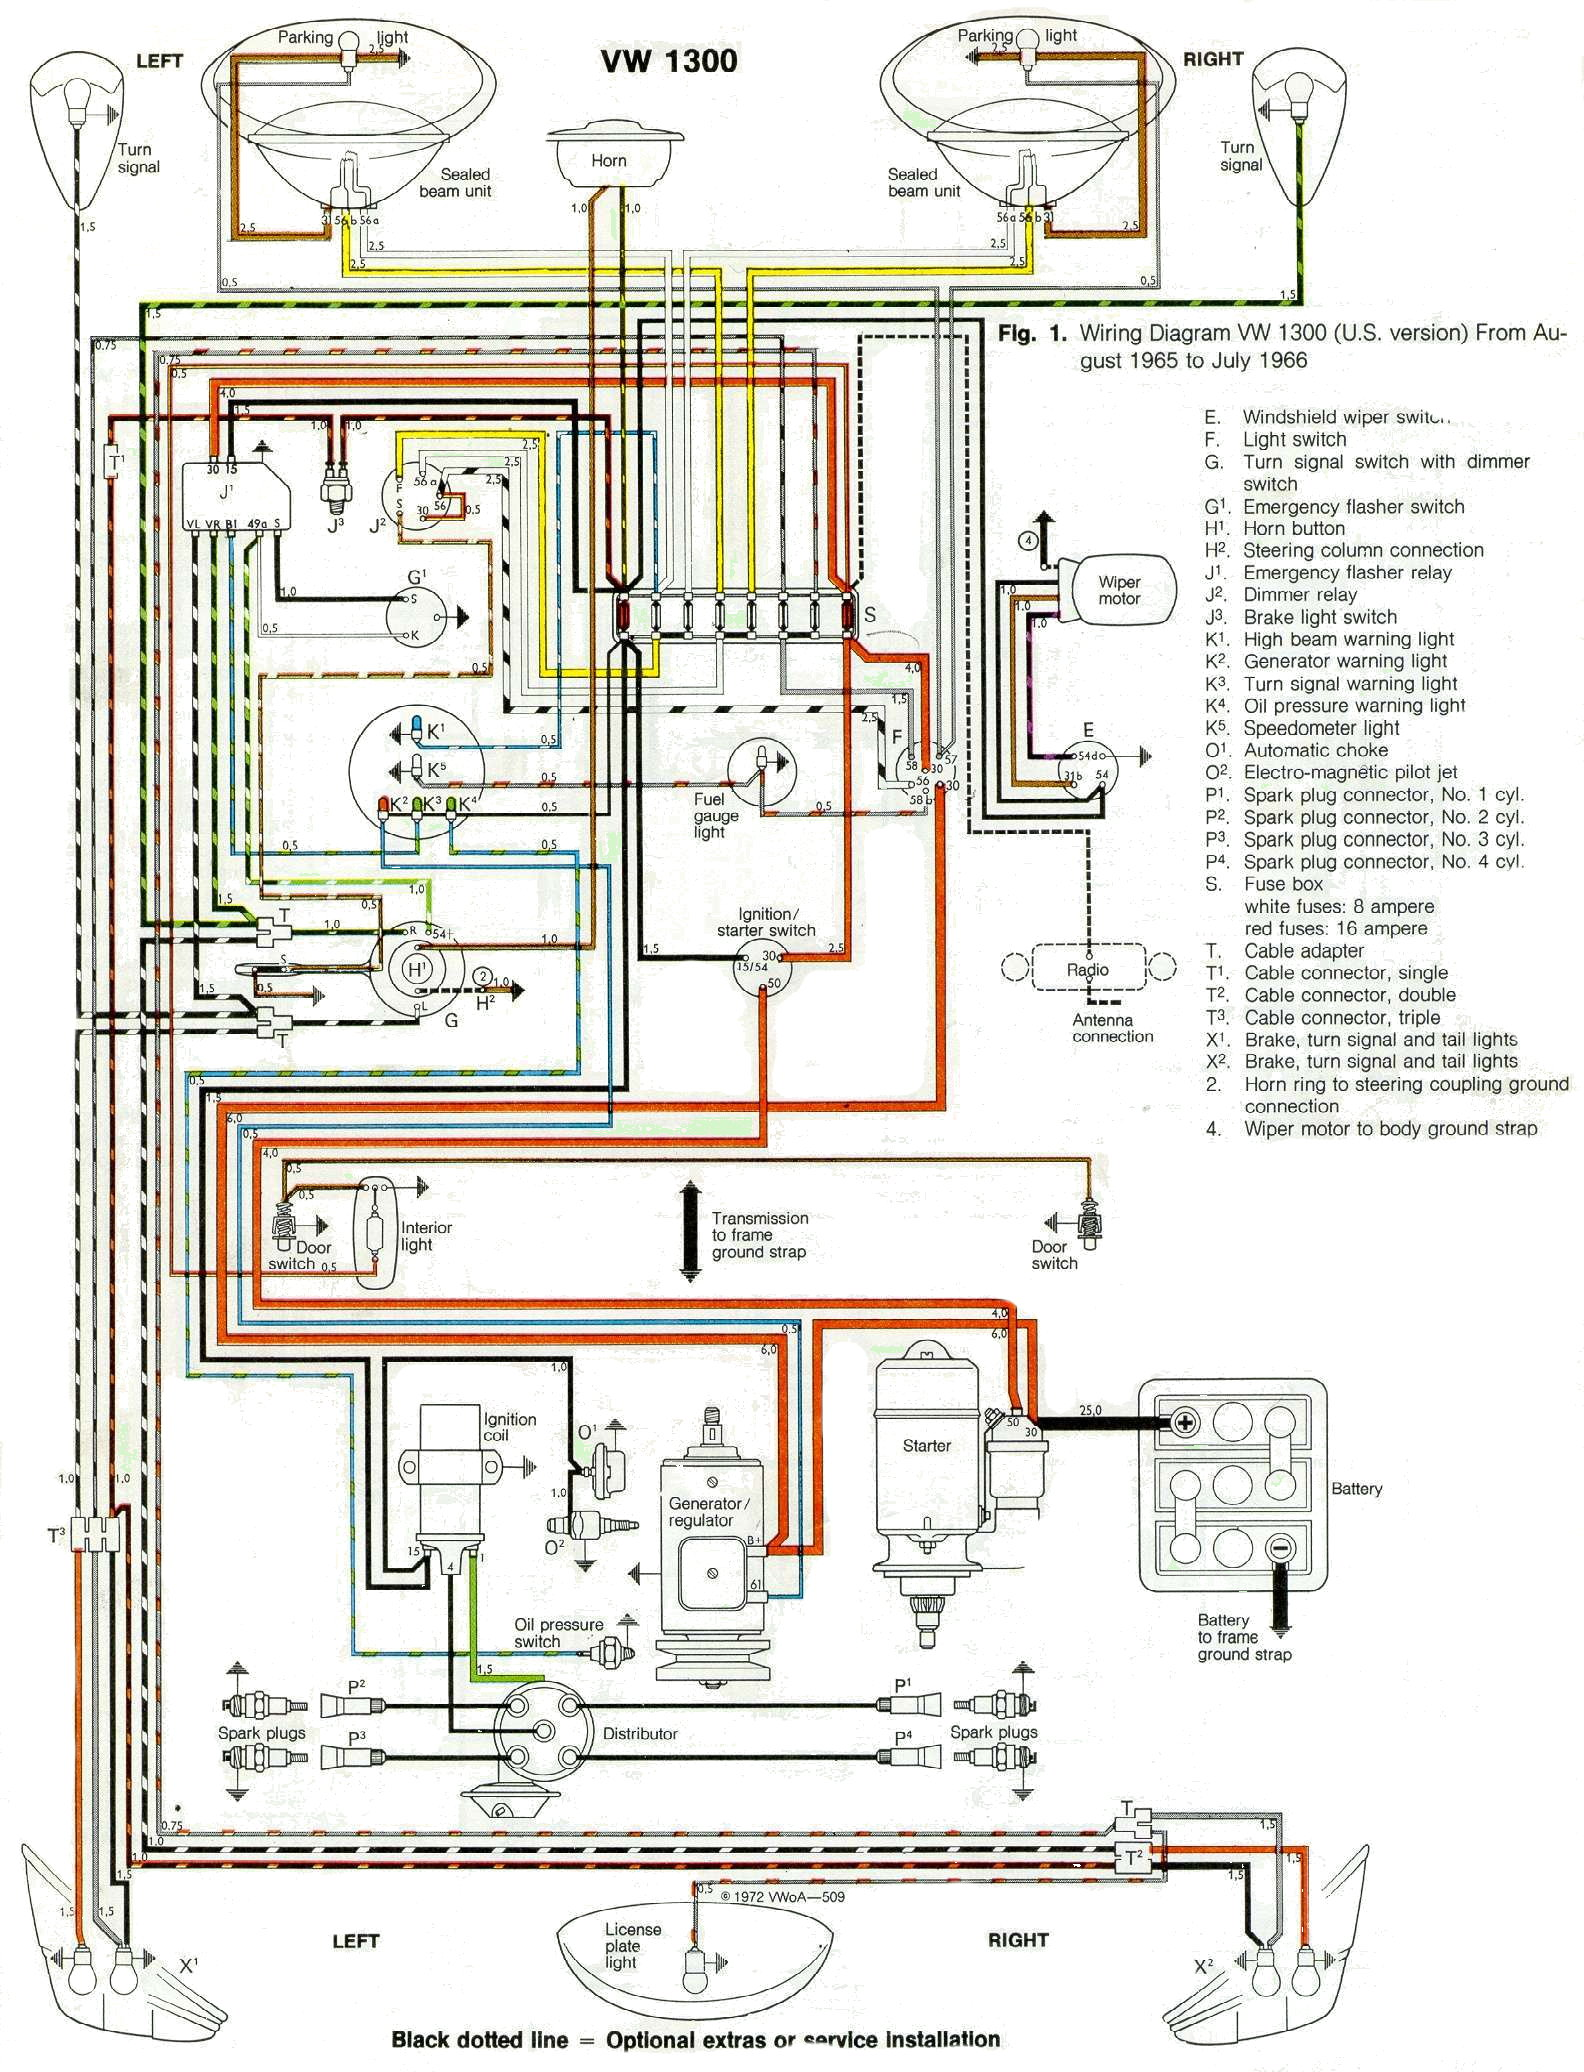 1966 Wiring 1966 wiring diagram vw wiring diagram at gsmportal.co